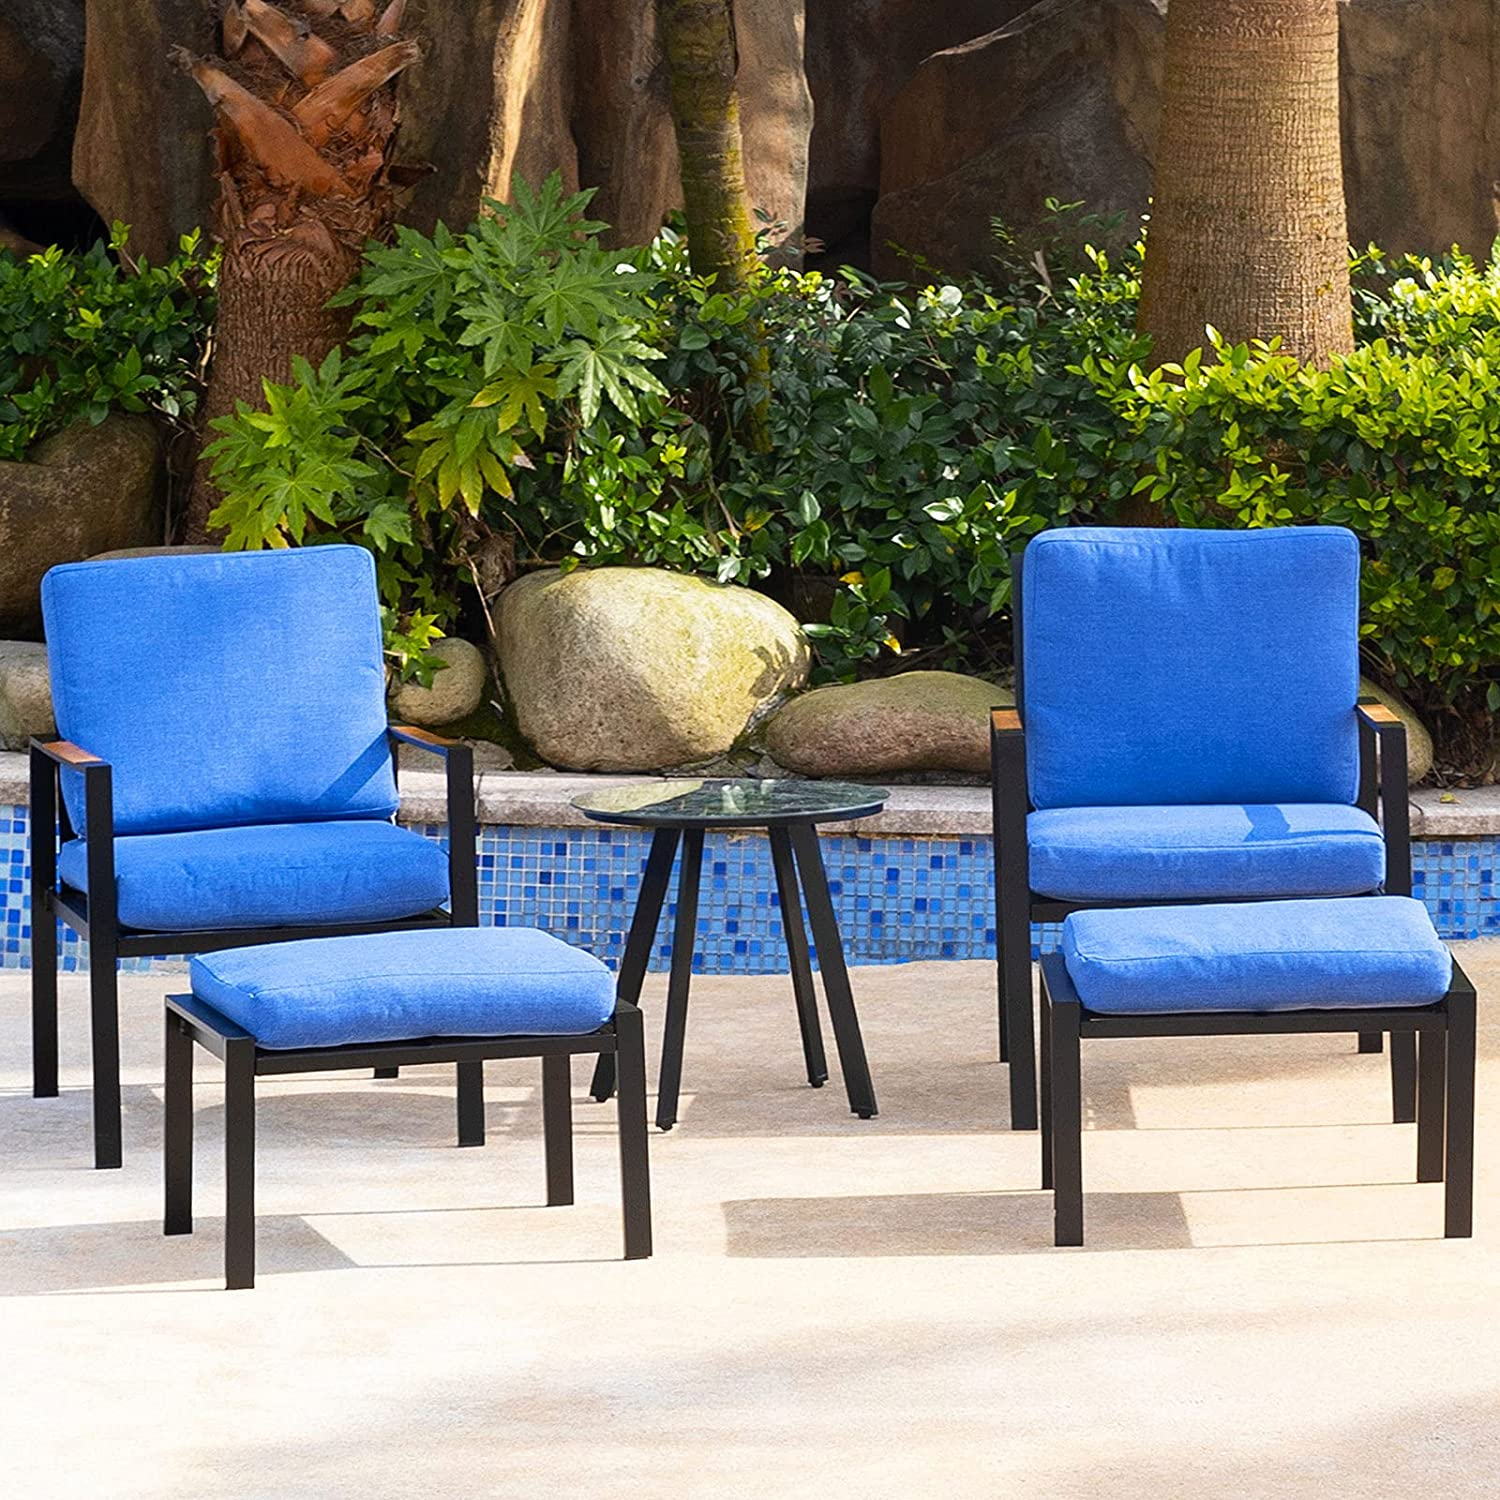 Sunnyfeel 5 Piece Outdoor Patio Furniture Set, Metal Patio Conversation Sets with Soft Padded Cushions Lounge Chair & Ottomans, Small Side Table, Bistro Set for Porch/Backyard/Pool/Garden/Lawn (Blue)